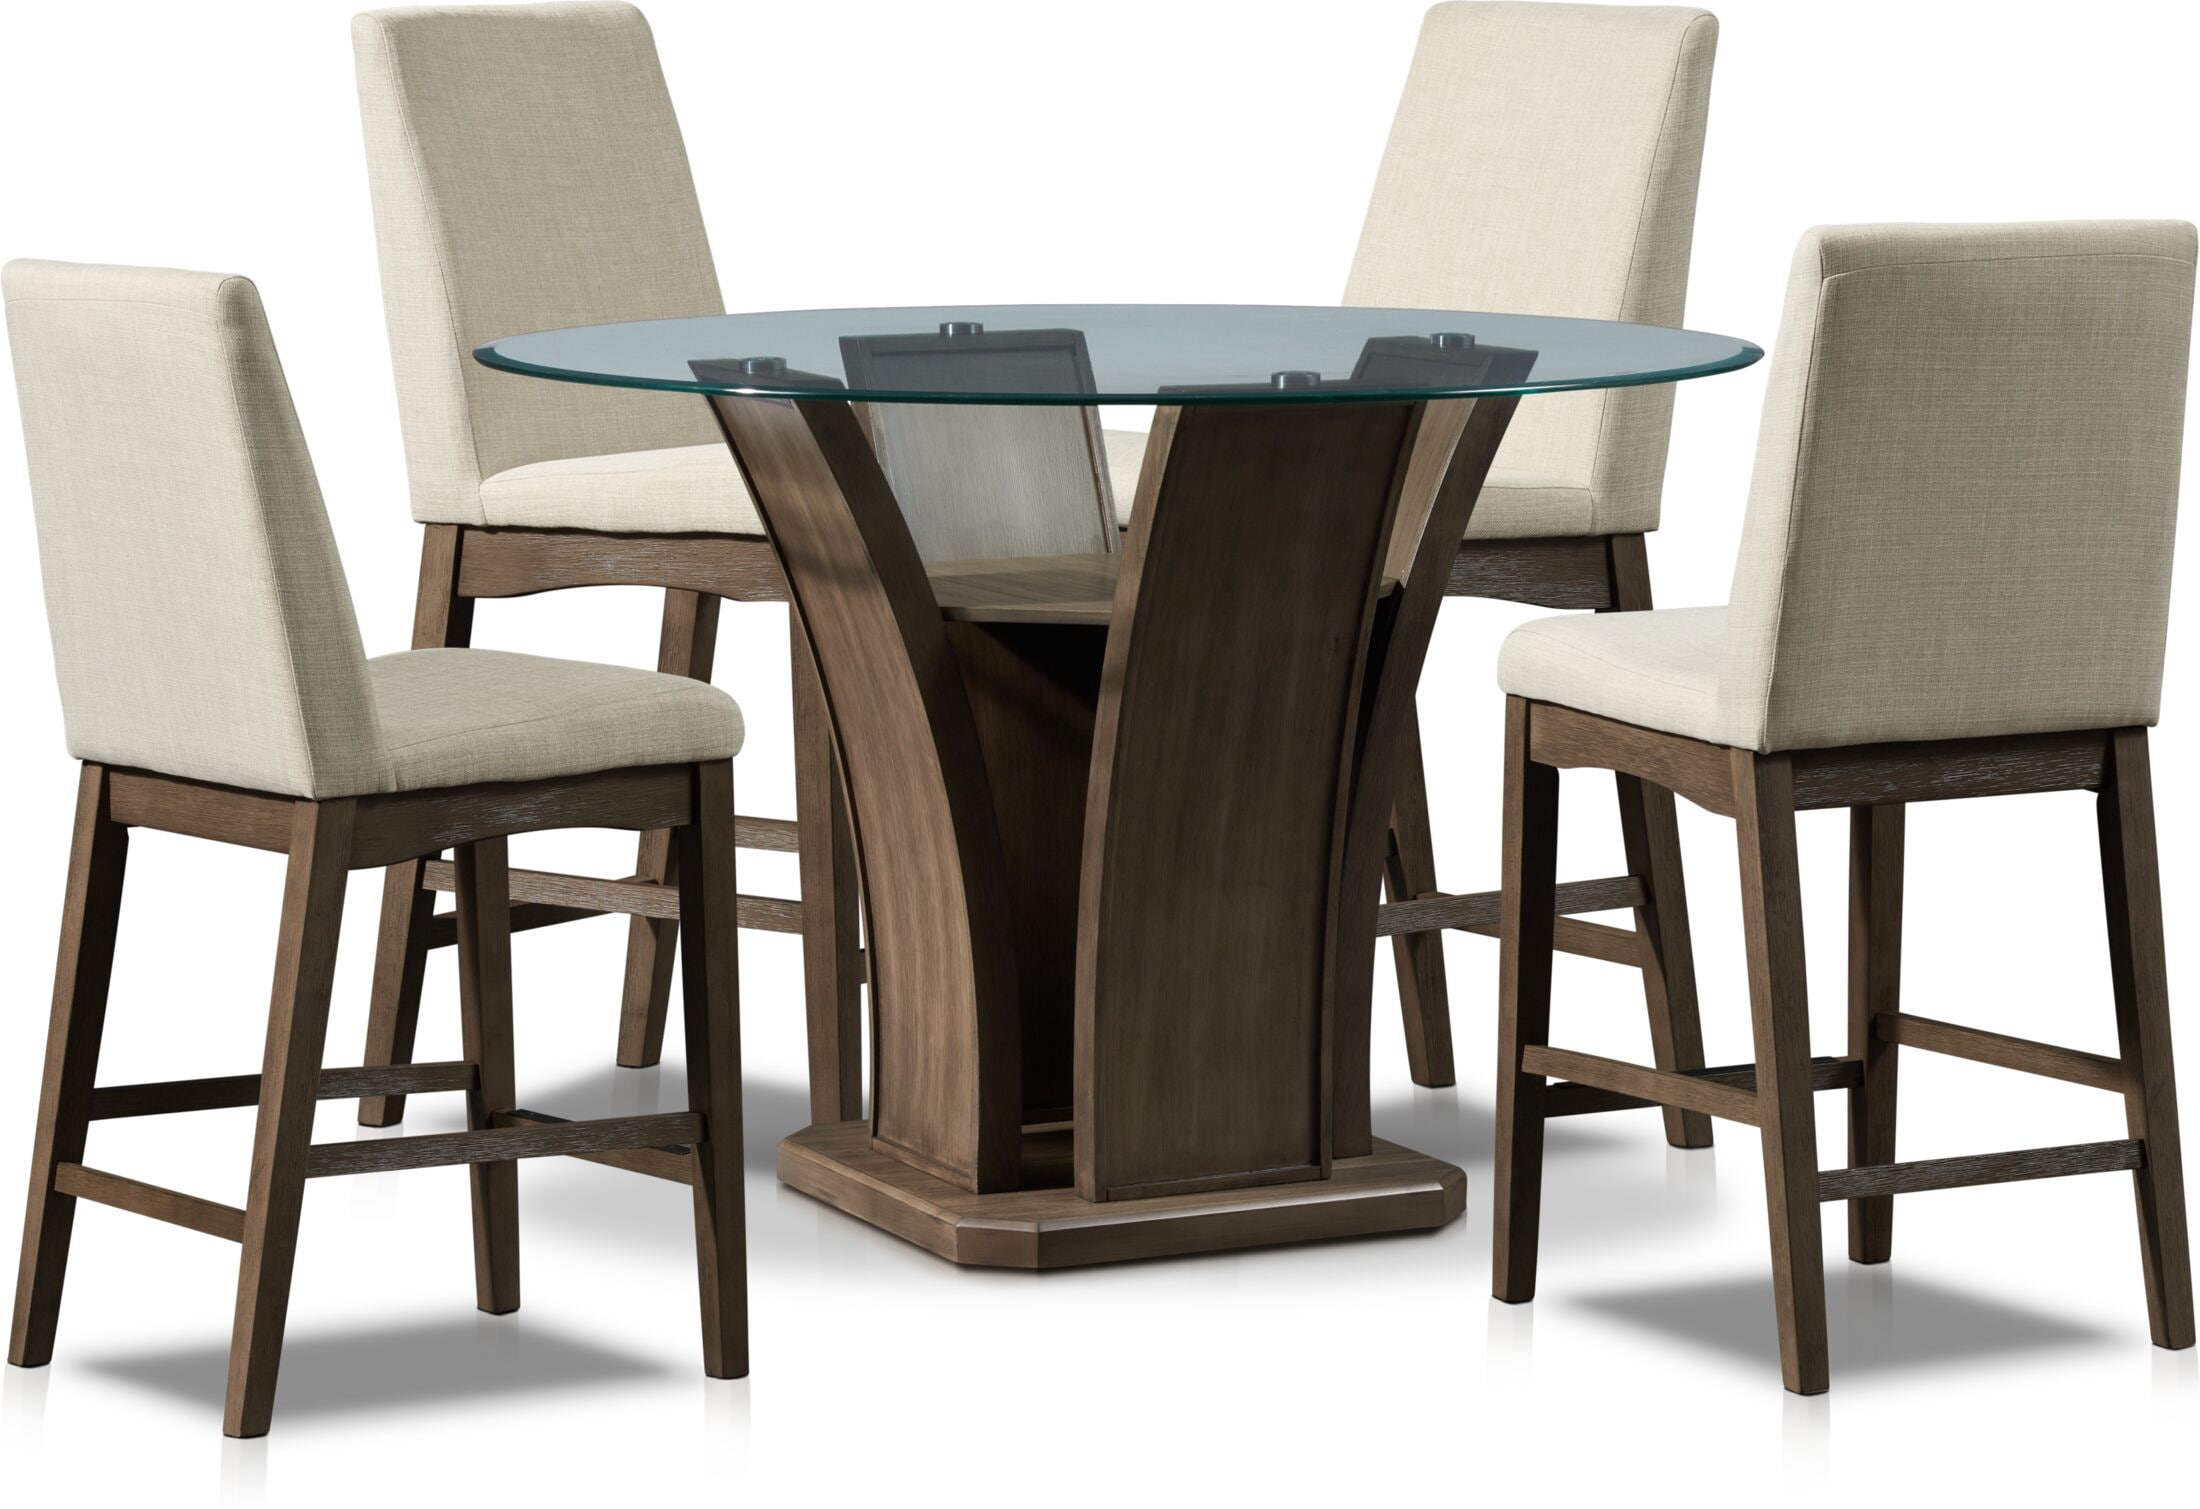 Dining Room Furniture - Gemini Counter-Height Dining Table and 4 Stools